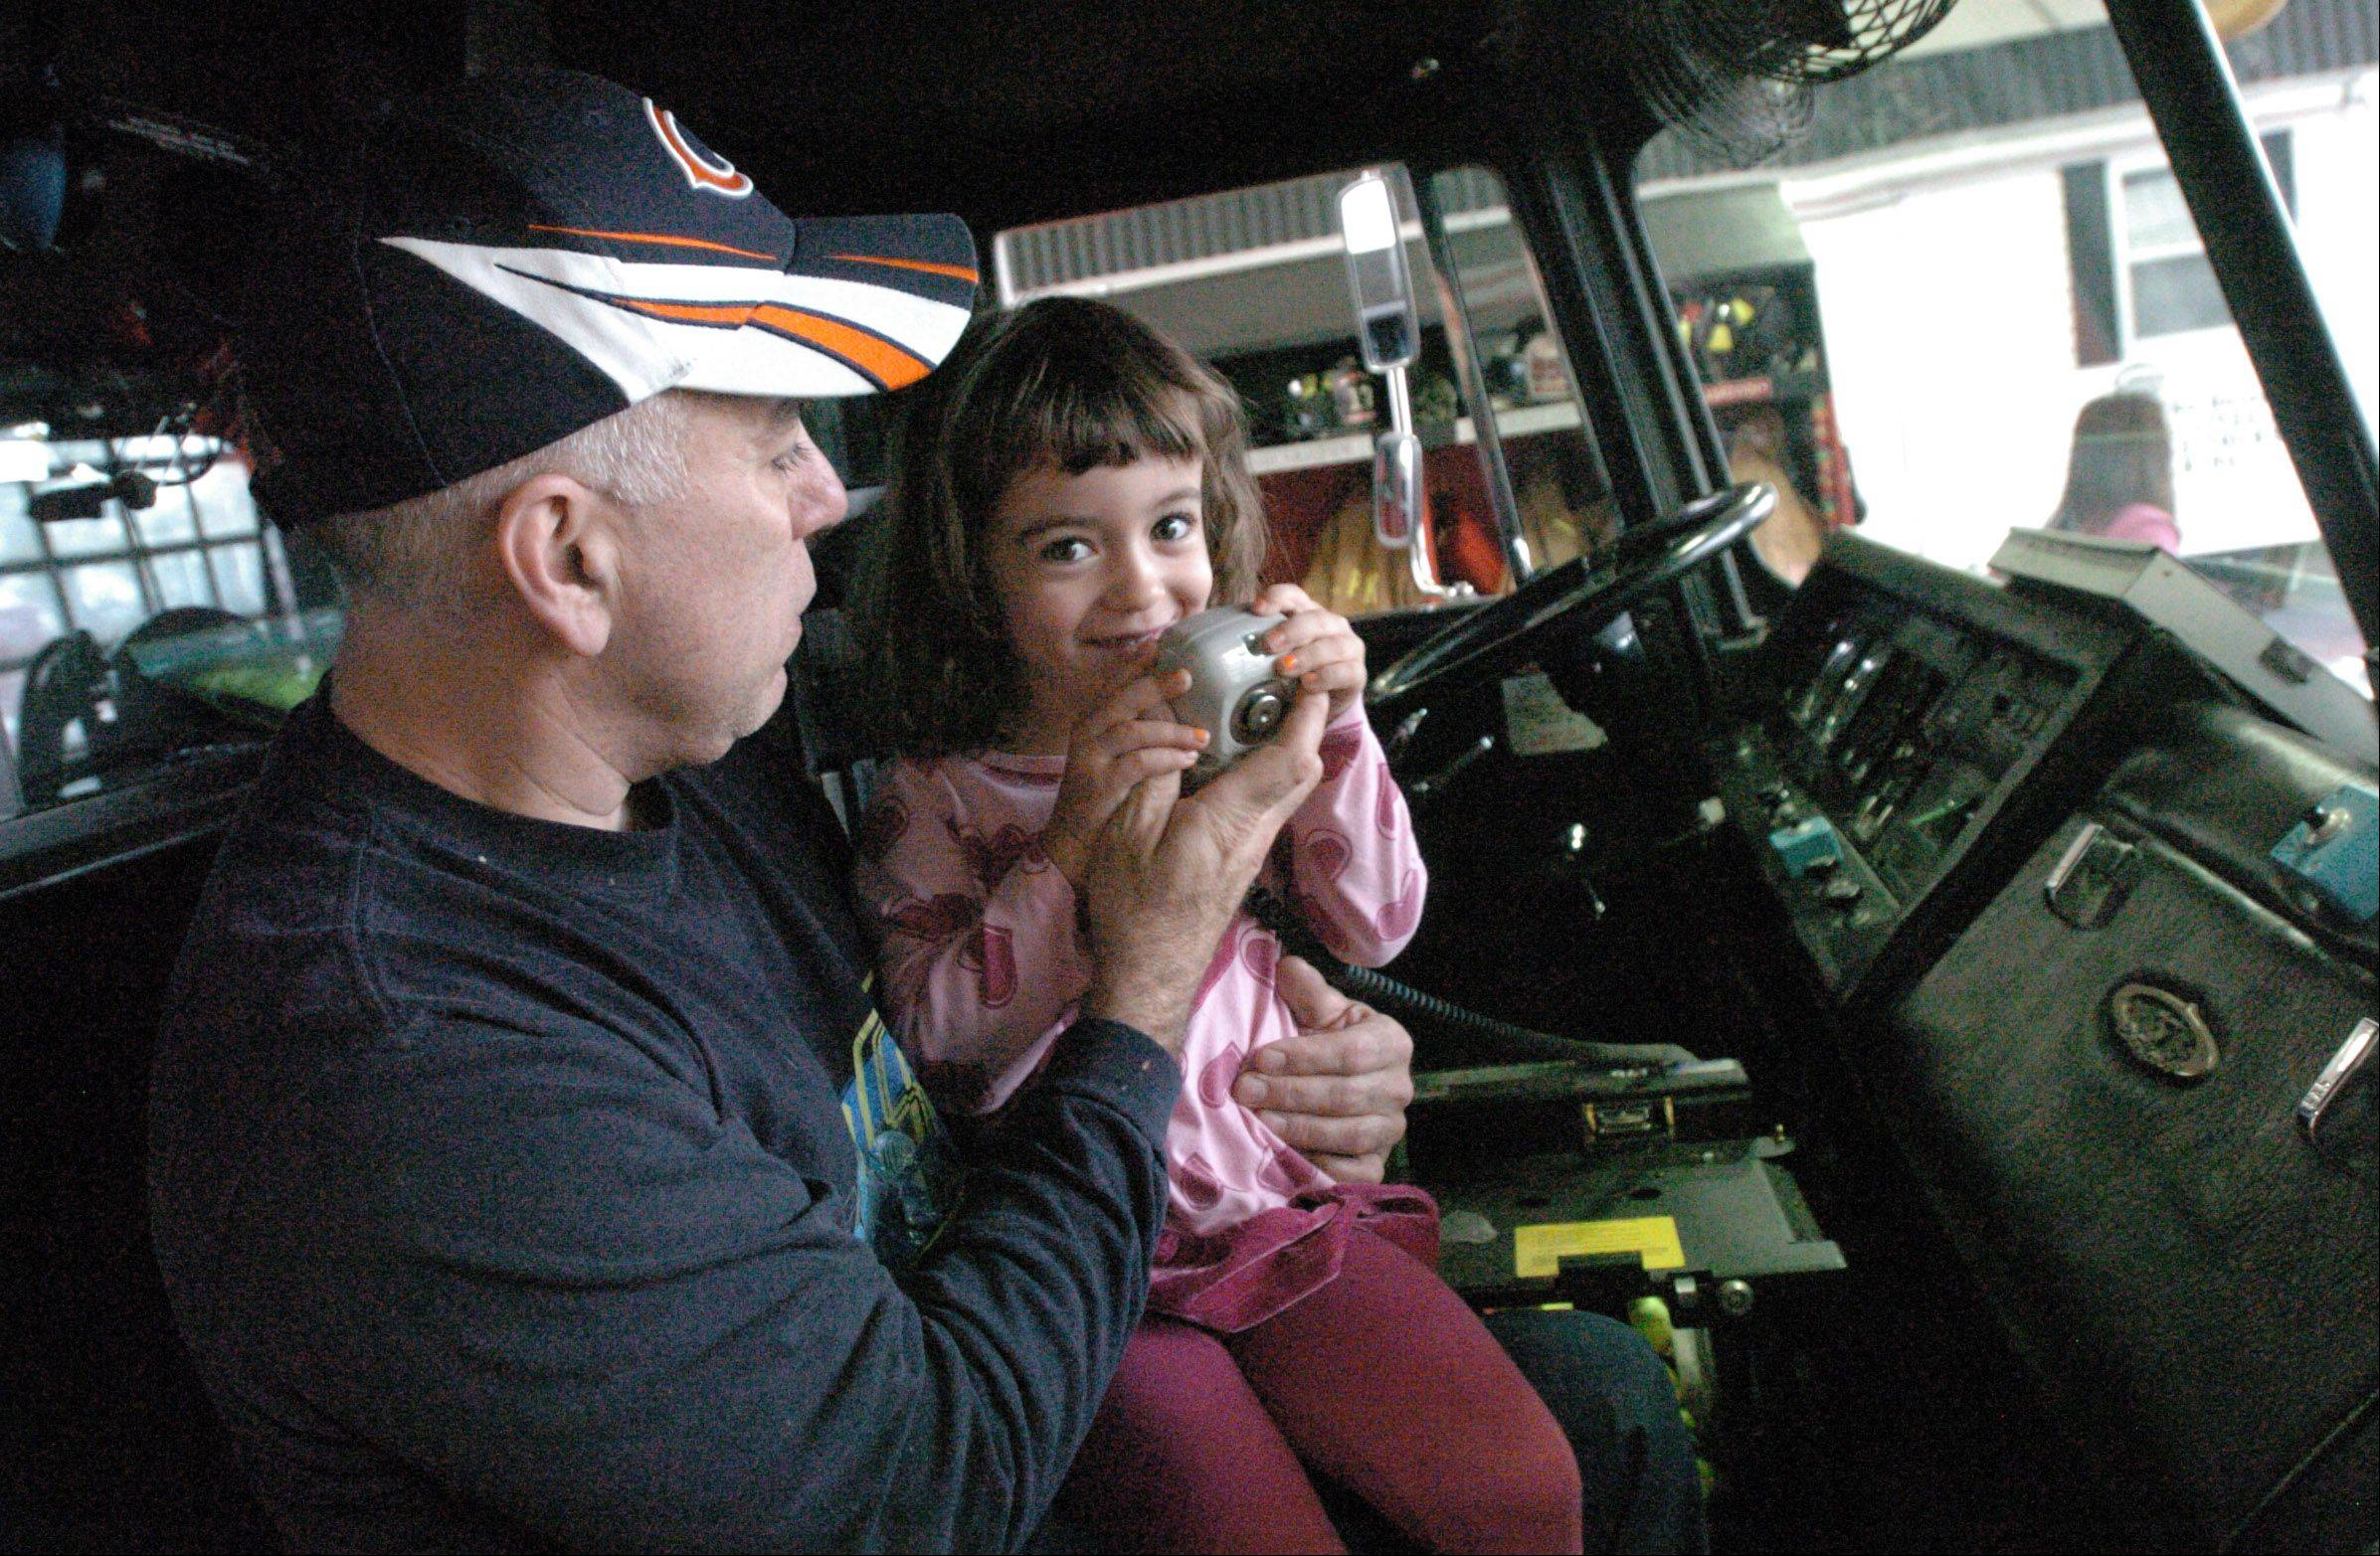 Robert Donofrio and his daughter Amy take a look at a Villa Park fire truck during the open house Saturday. Well over 300 people took part in this event that gave residents a look at what happens at their local fire house.